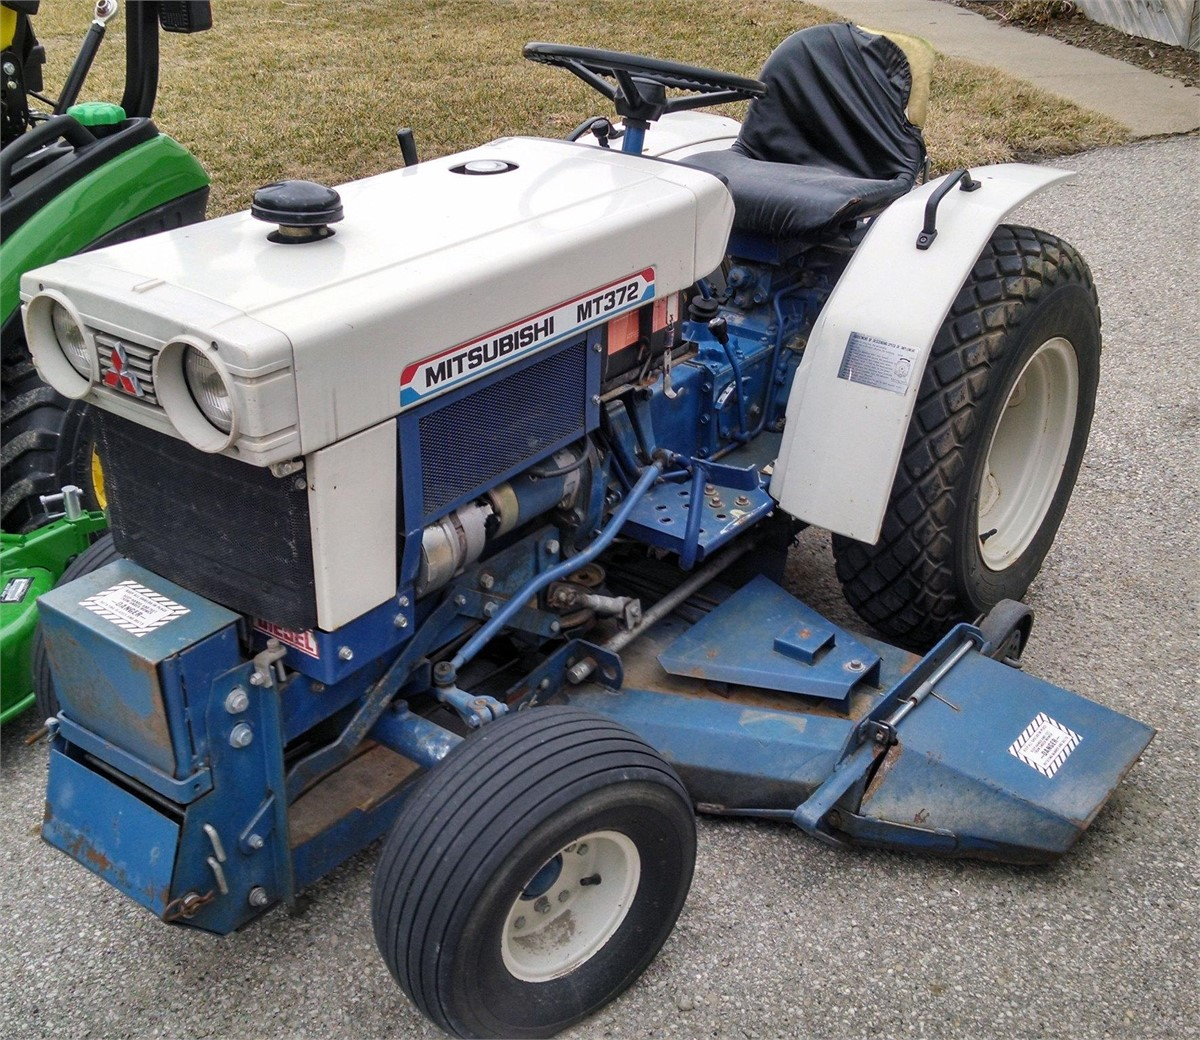 Mitsubishi Tractor Mower Deck : Mitsubishi mt tractors less than hp for auction at